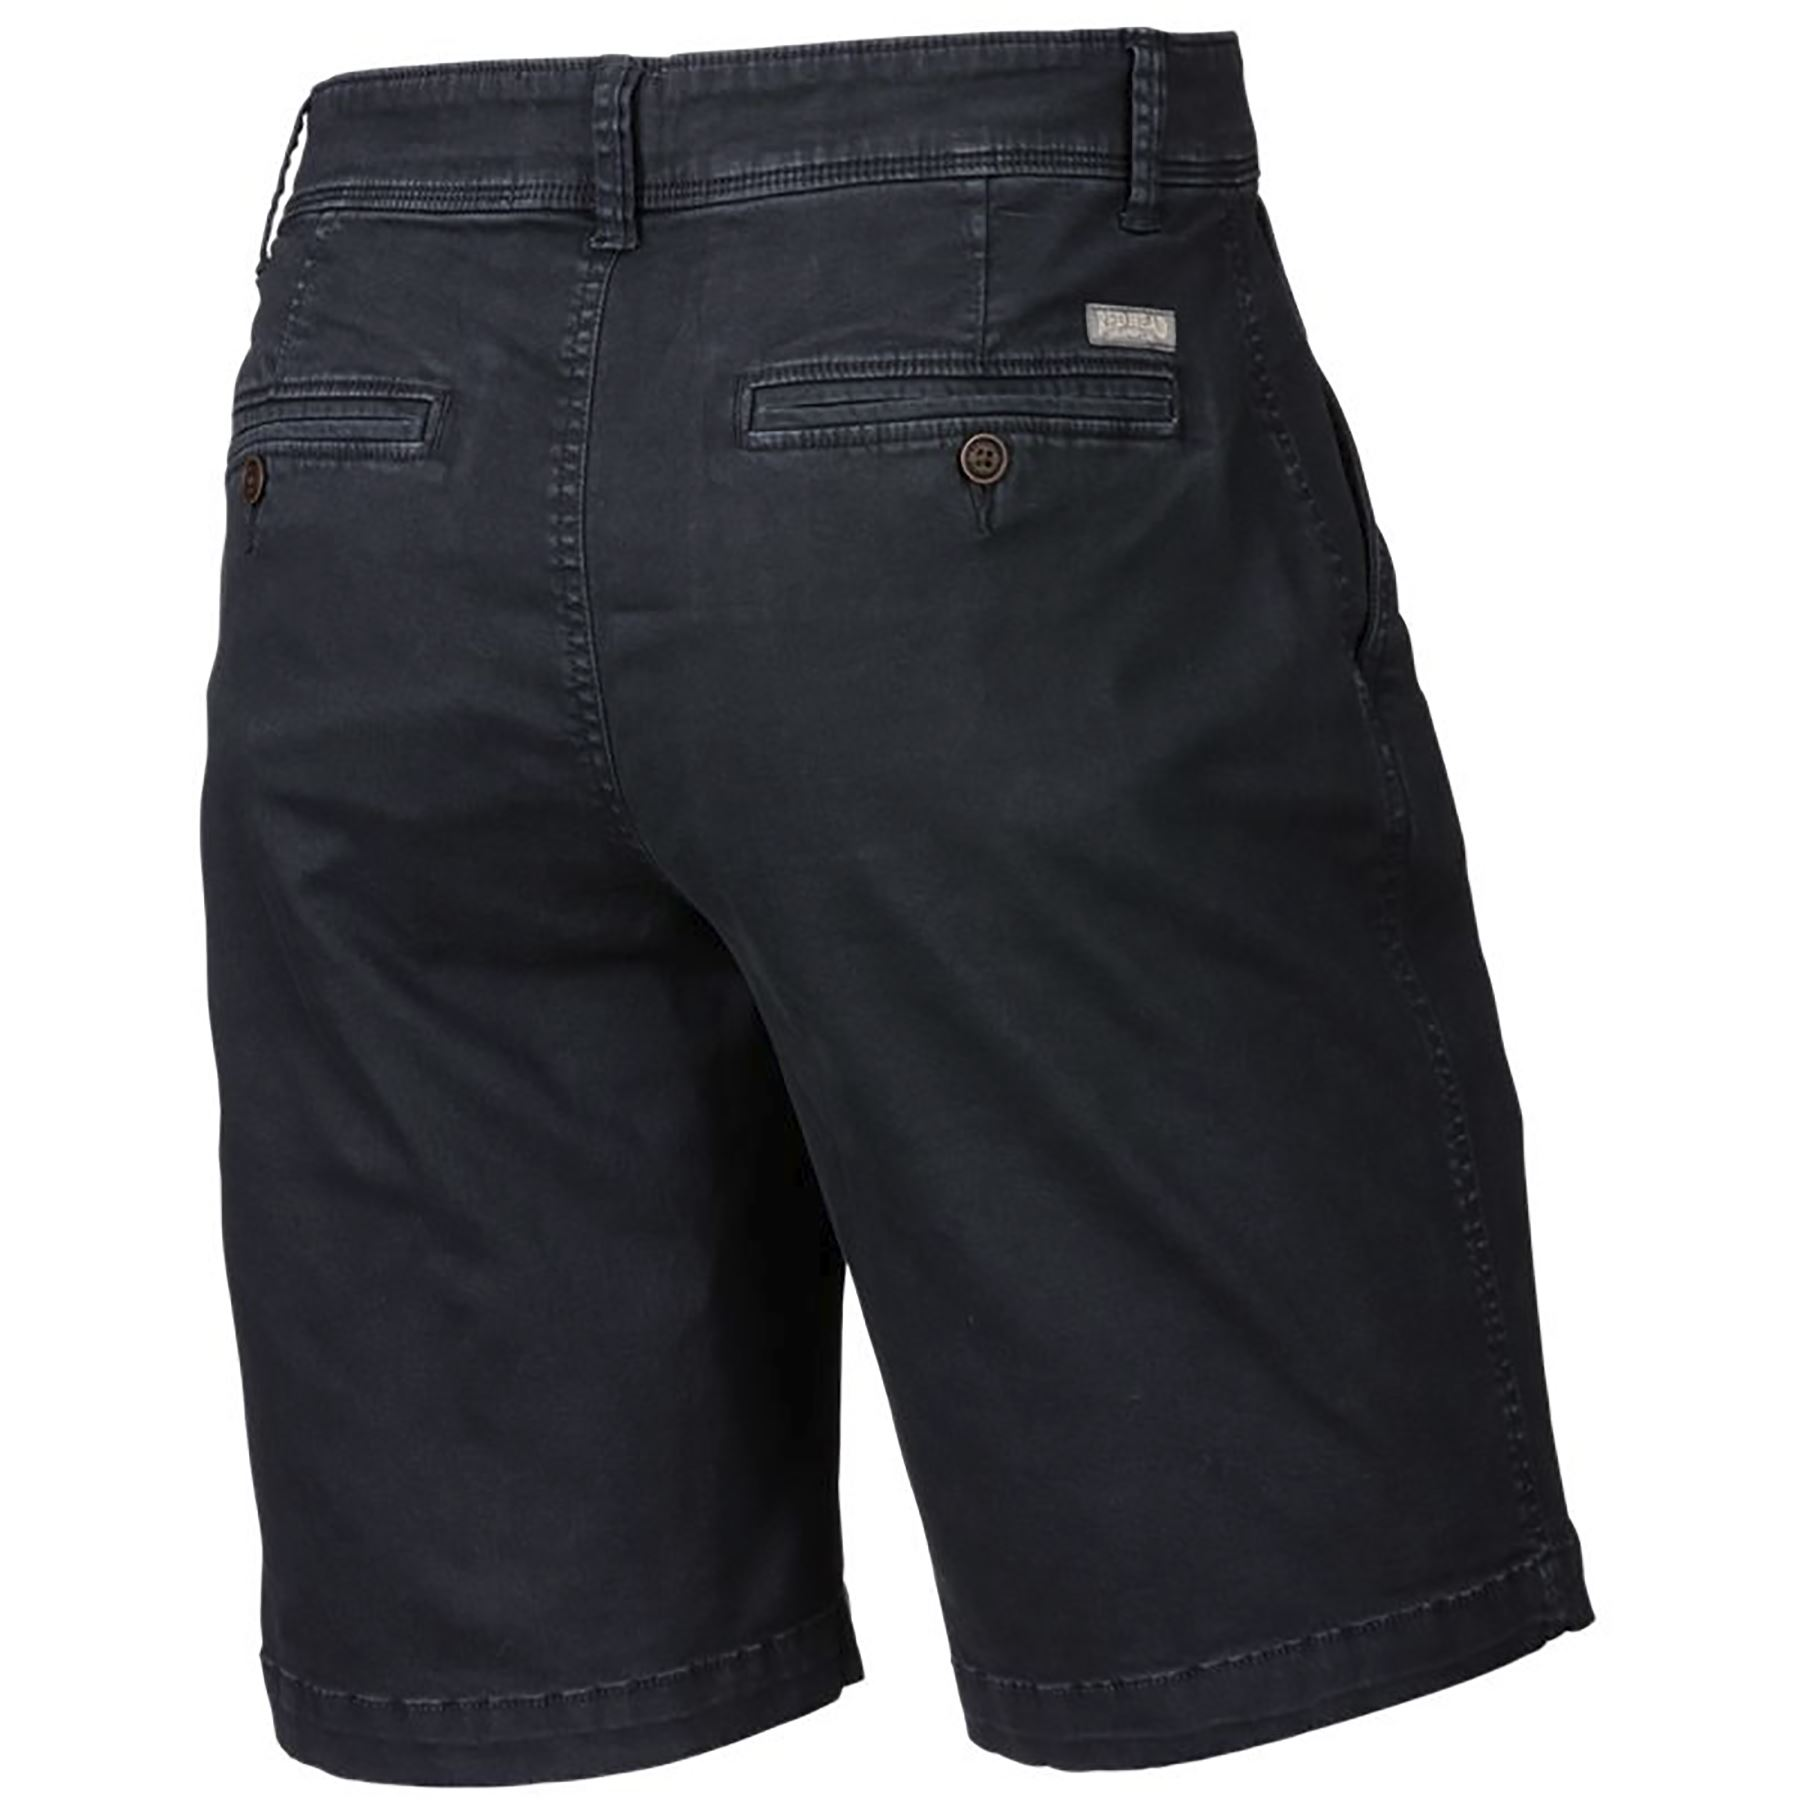 Mens-Big-King-Chino-Shorts-RedHead-Stretch-Casual-Cotton-Cargo-Jeans-Half-Pants thumbnail 3